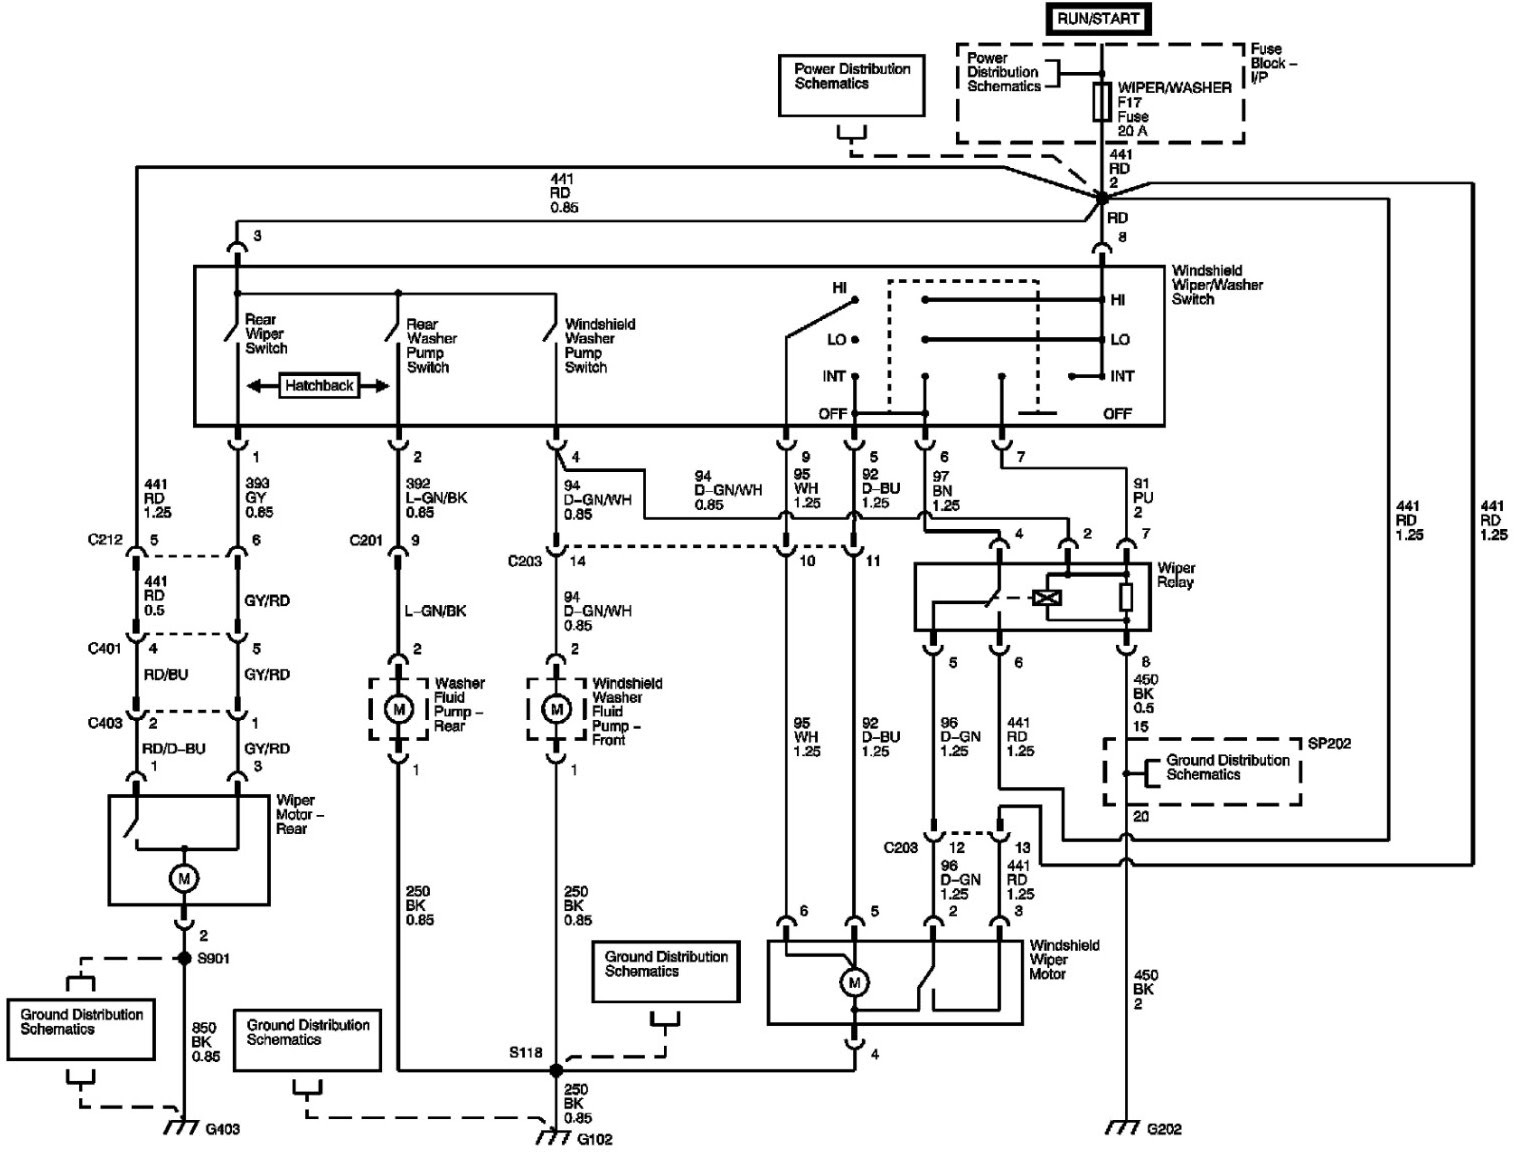 2007 Chevy Cobalt Wiring Diagram from lh4.googleusercontent.com